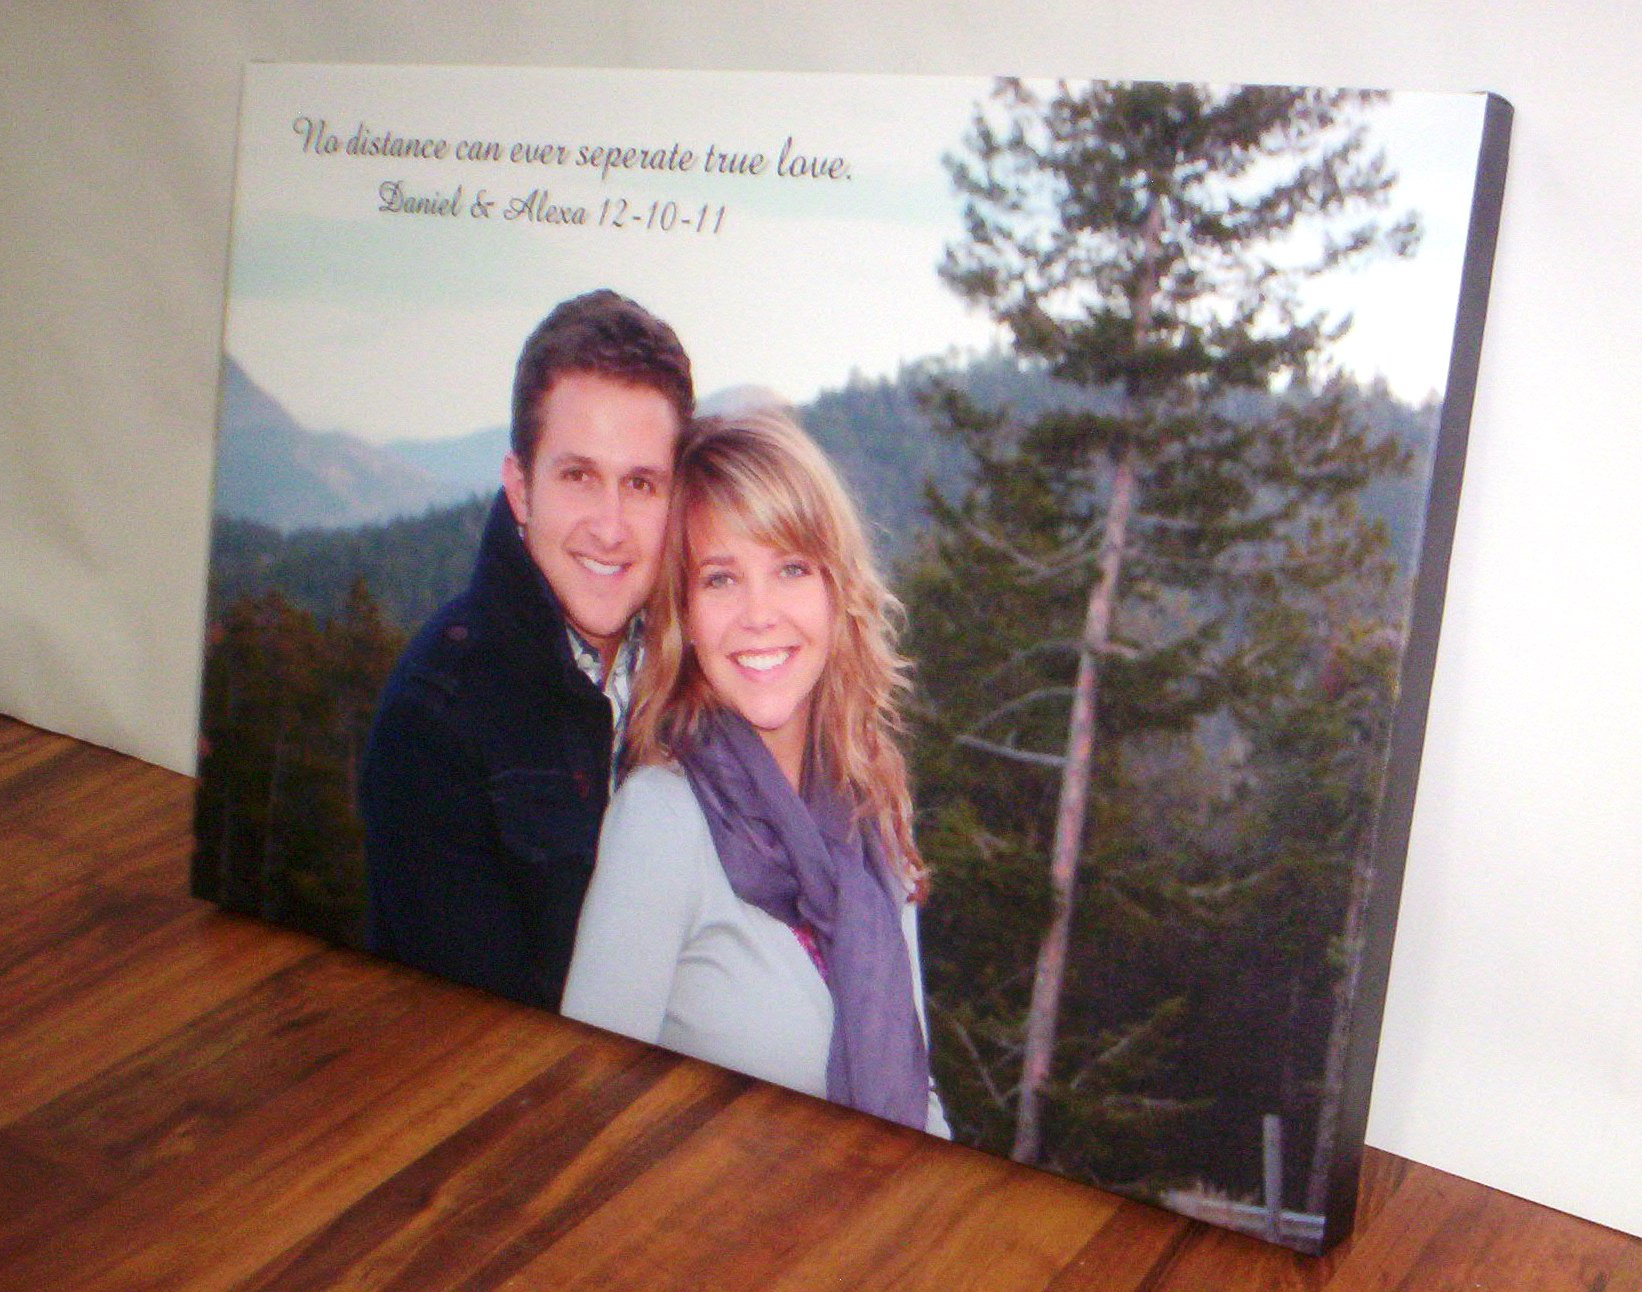 Wedding Present - Canvas Wall Art from Banners.com